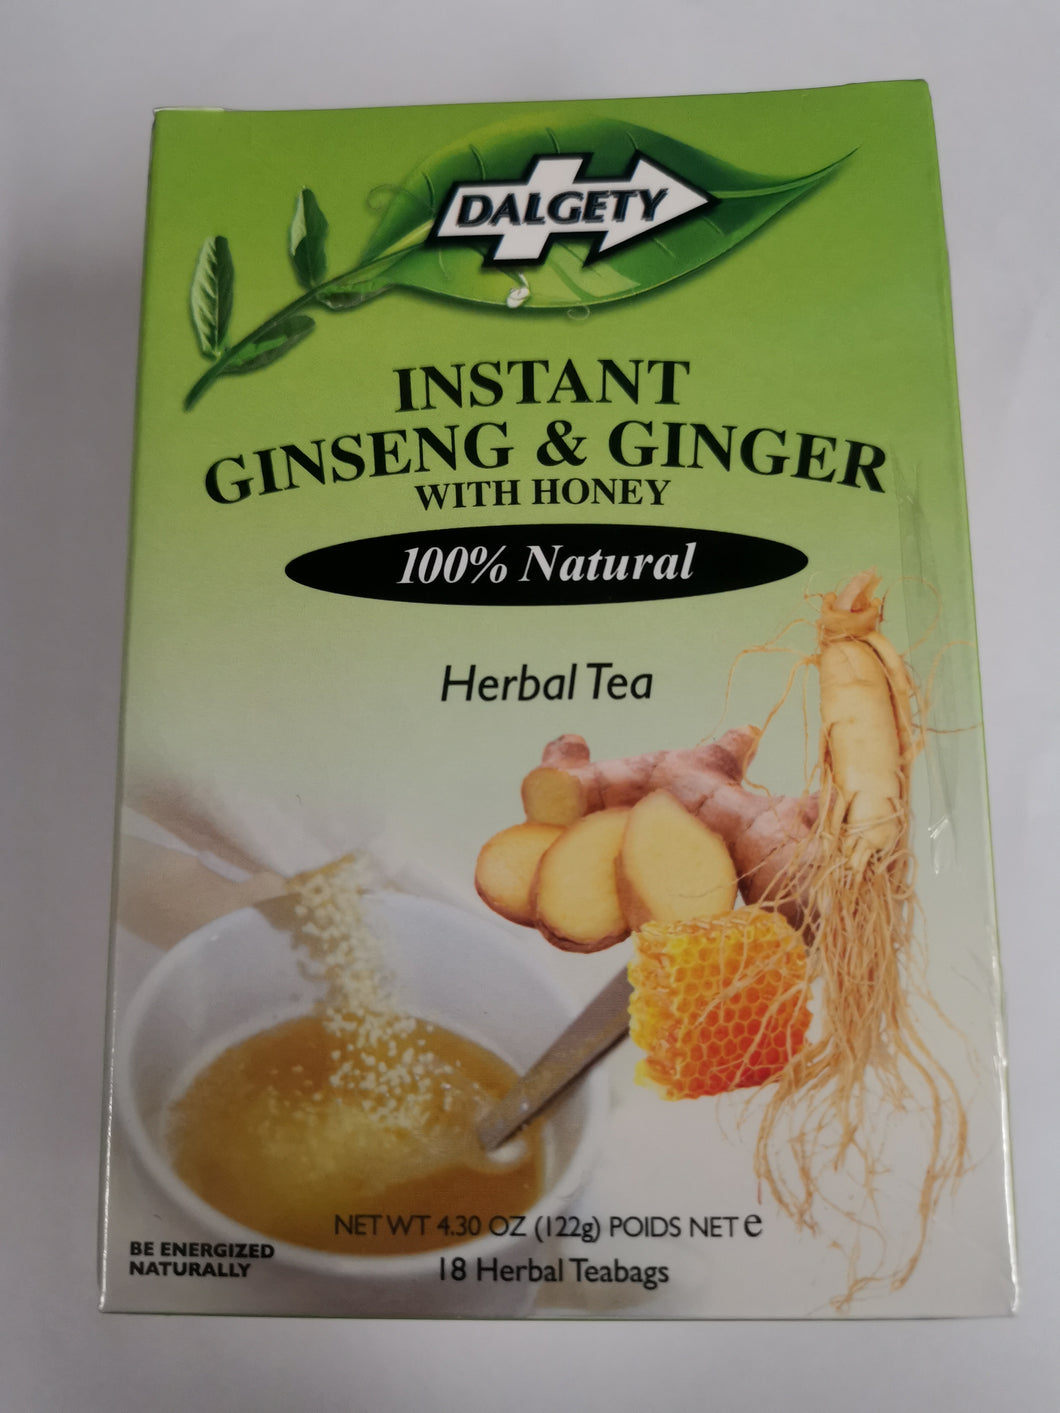 Dalgety Instant Ginseng & Ginger with honey